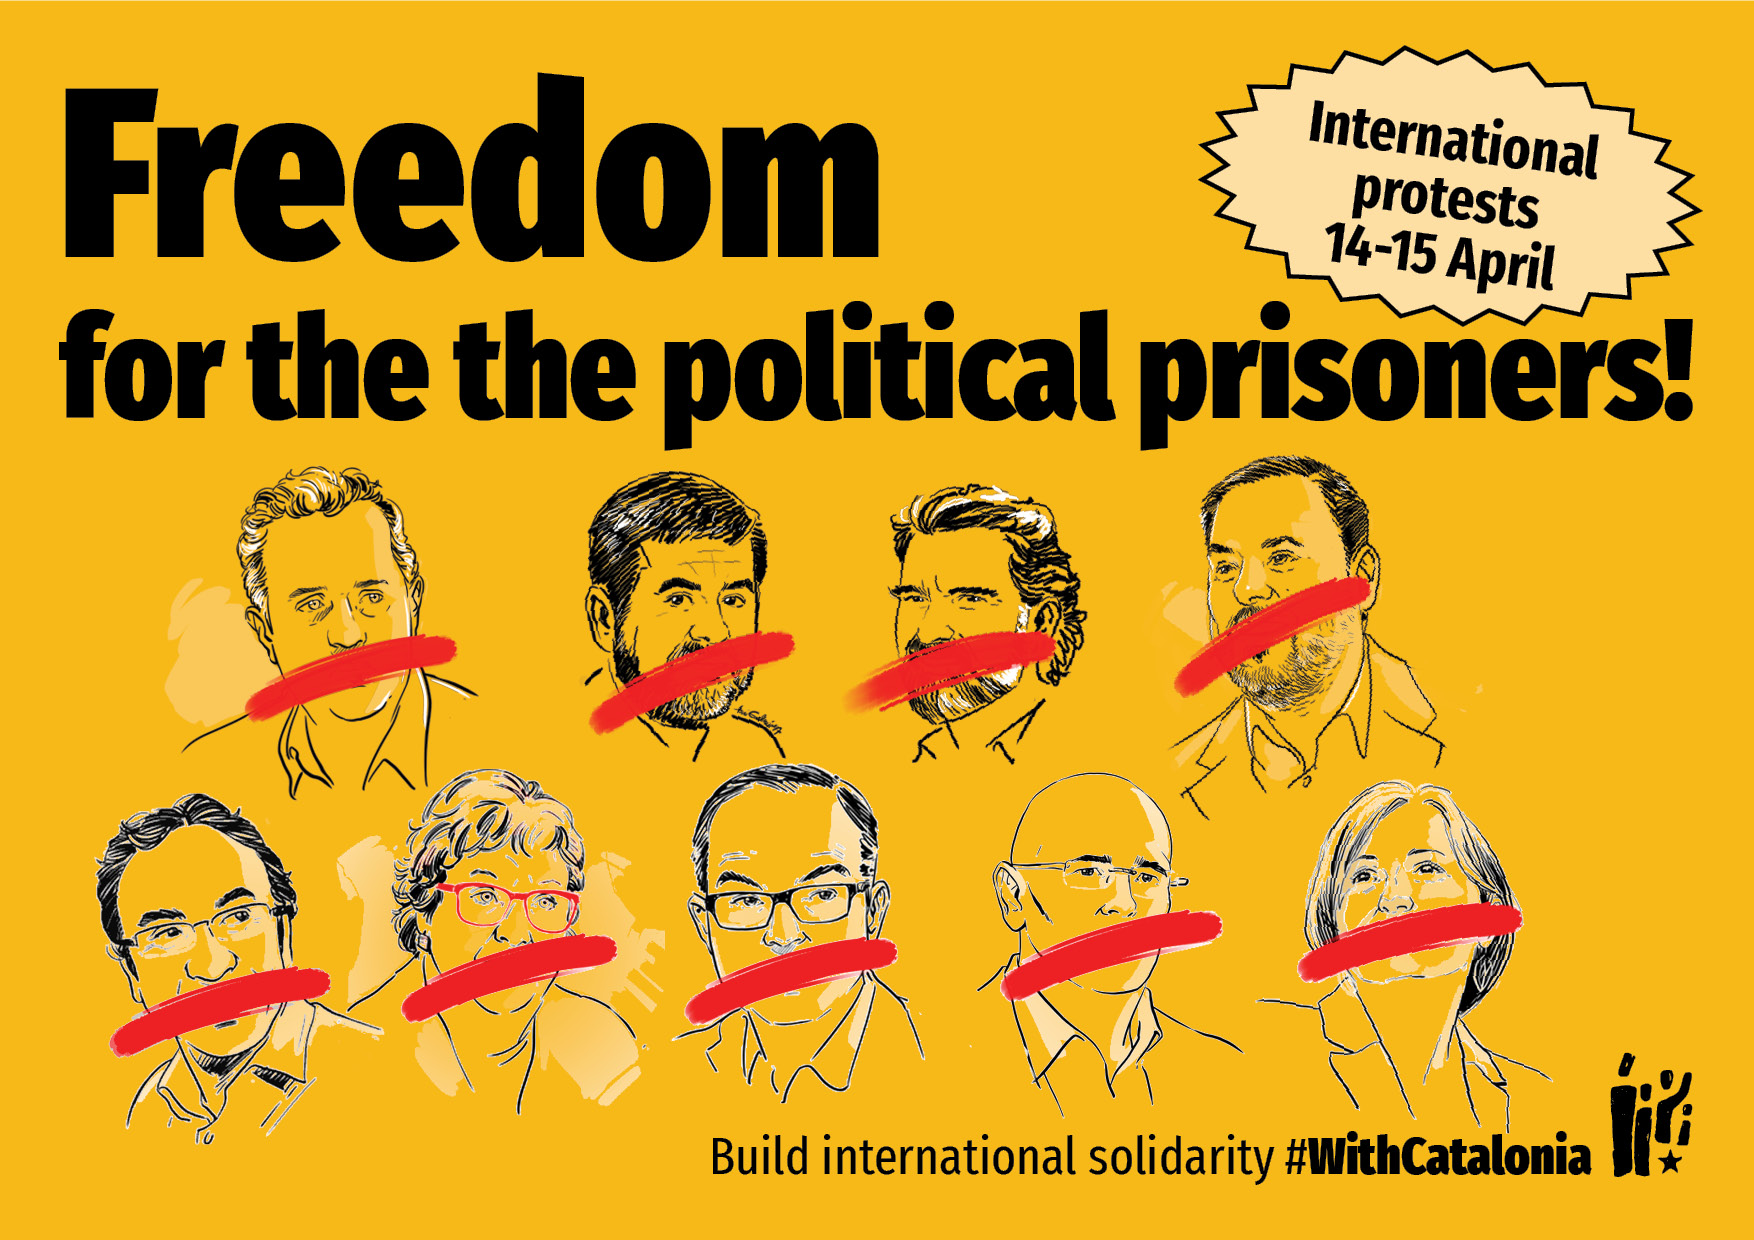 Freedom for the political prisoners